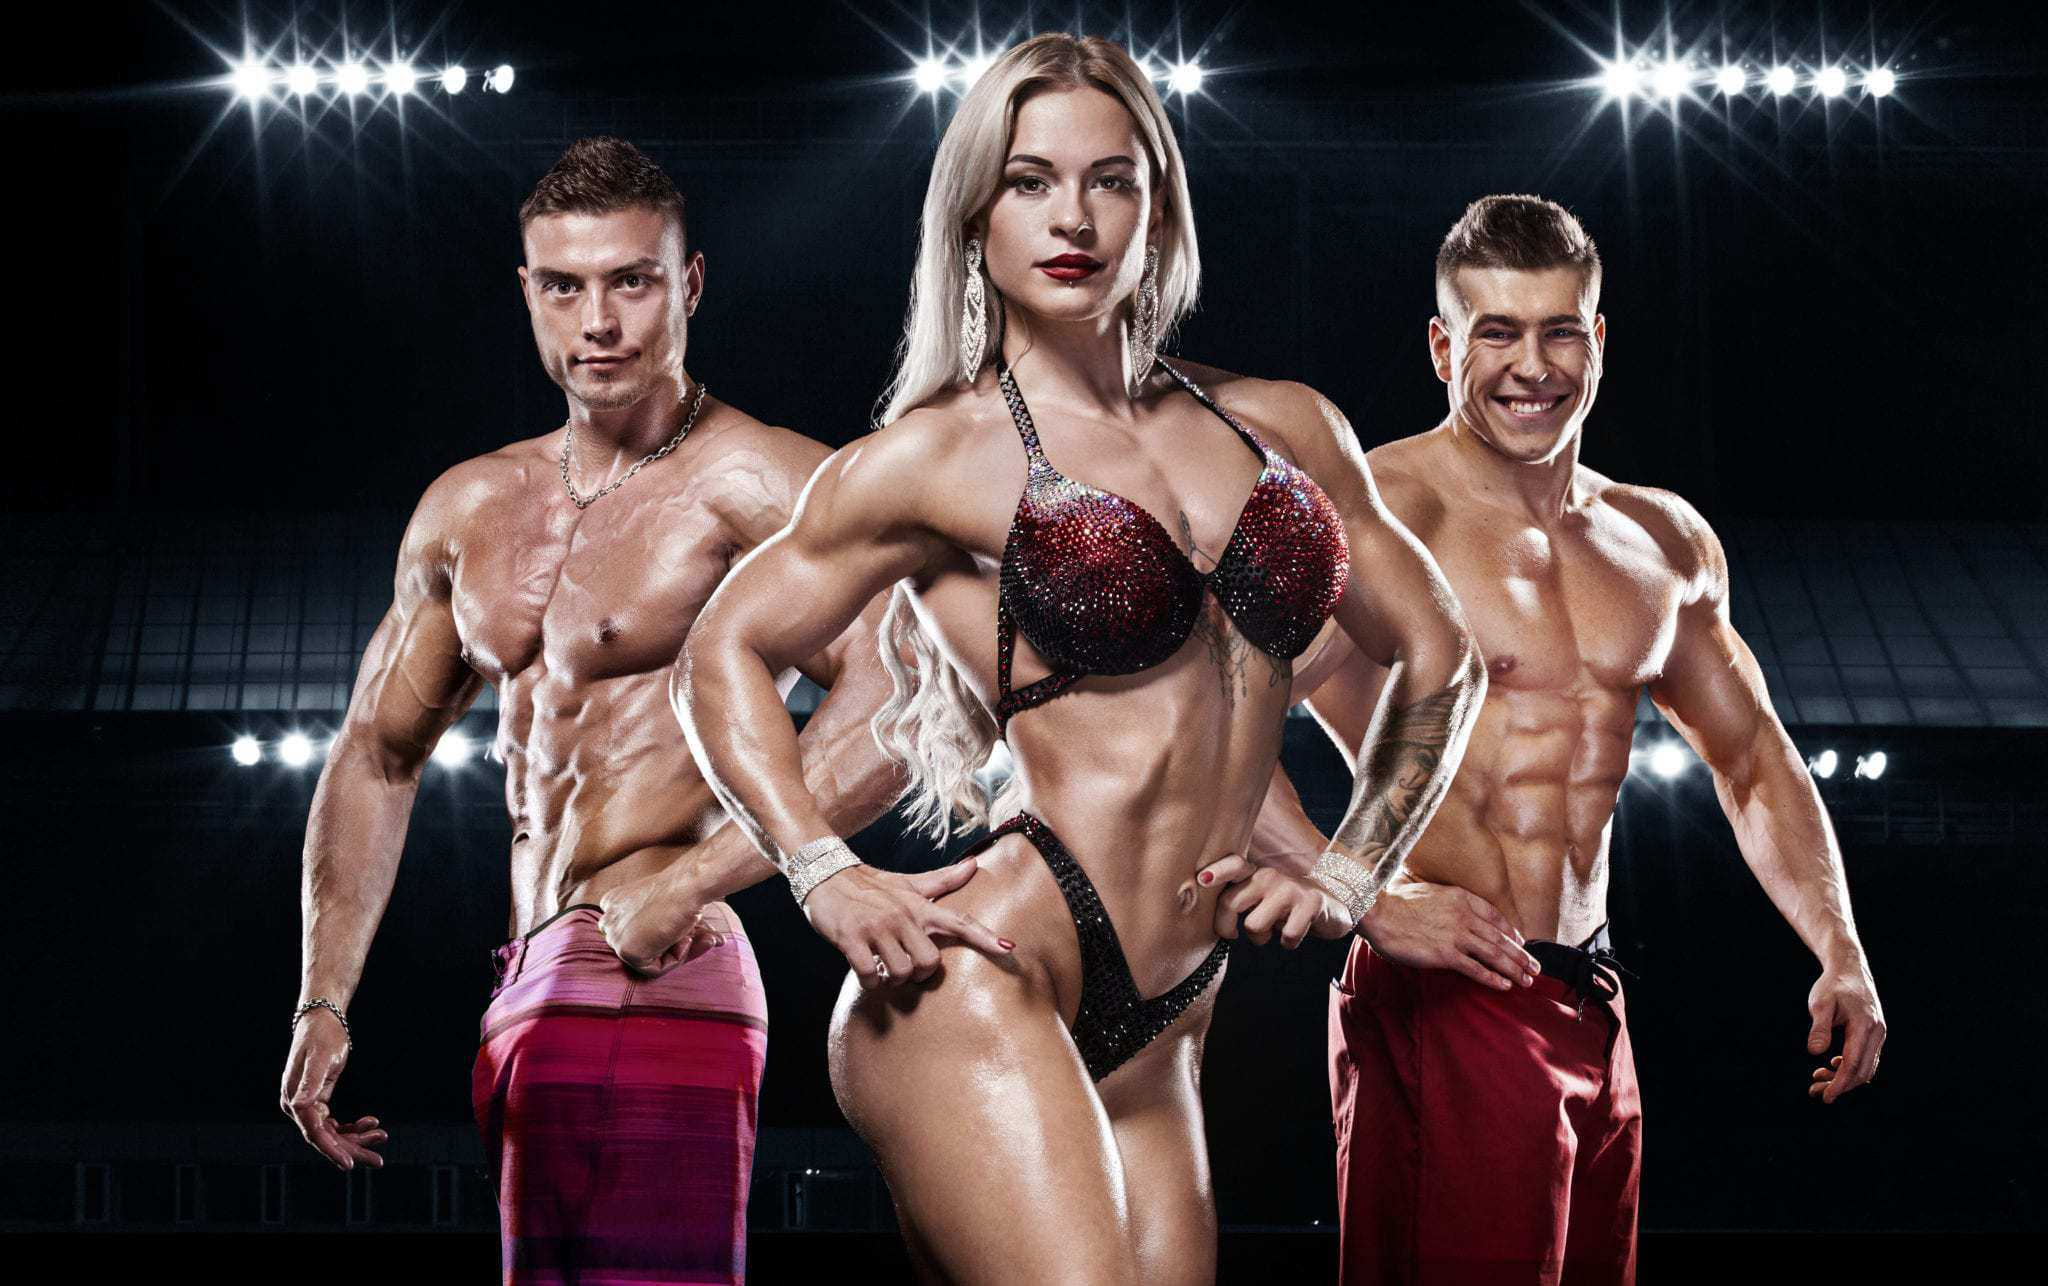 Young strong men and woman bodybuilders on background with lights.